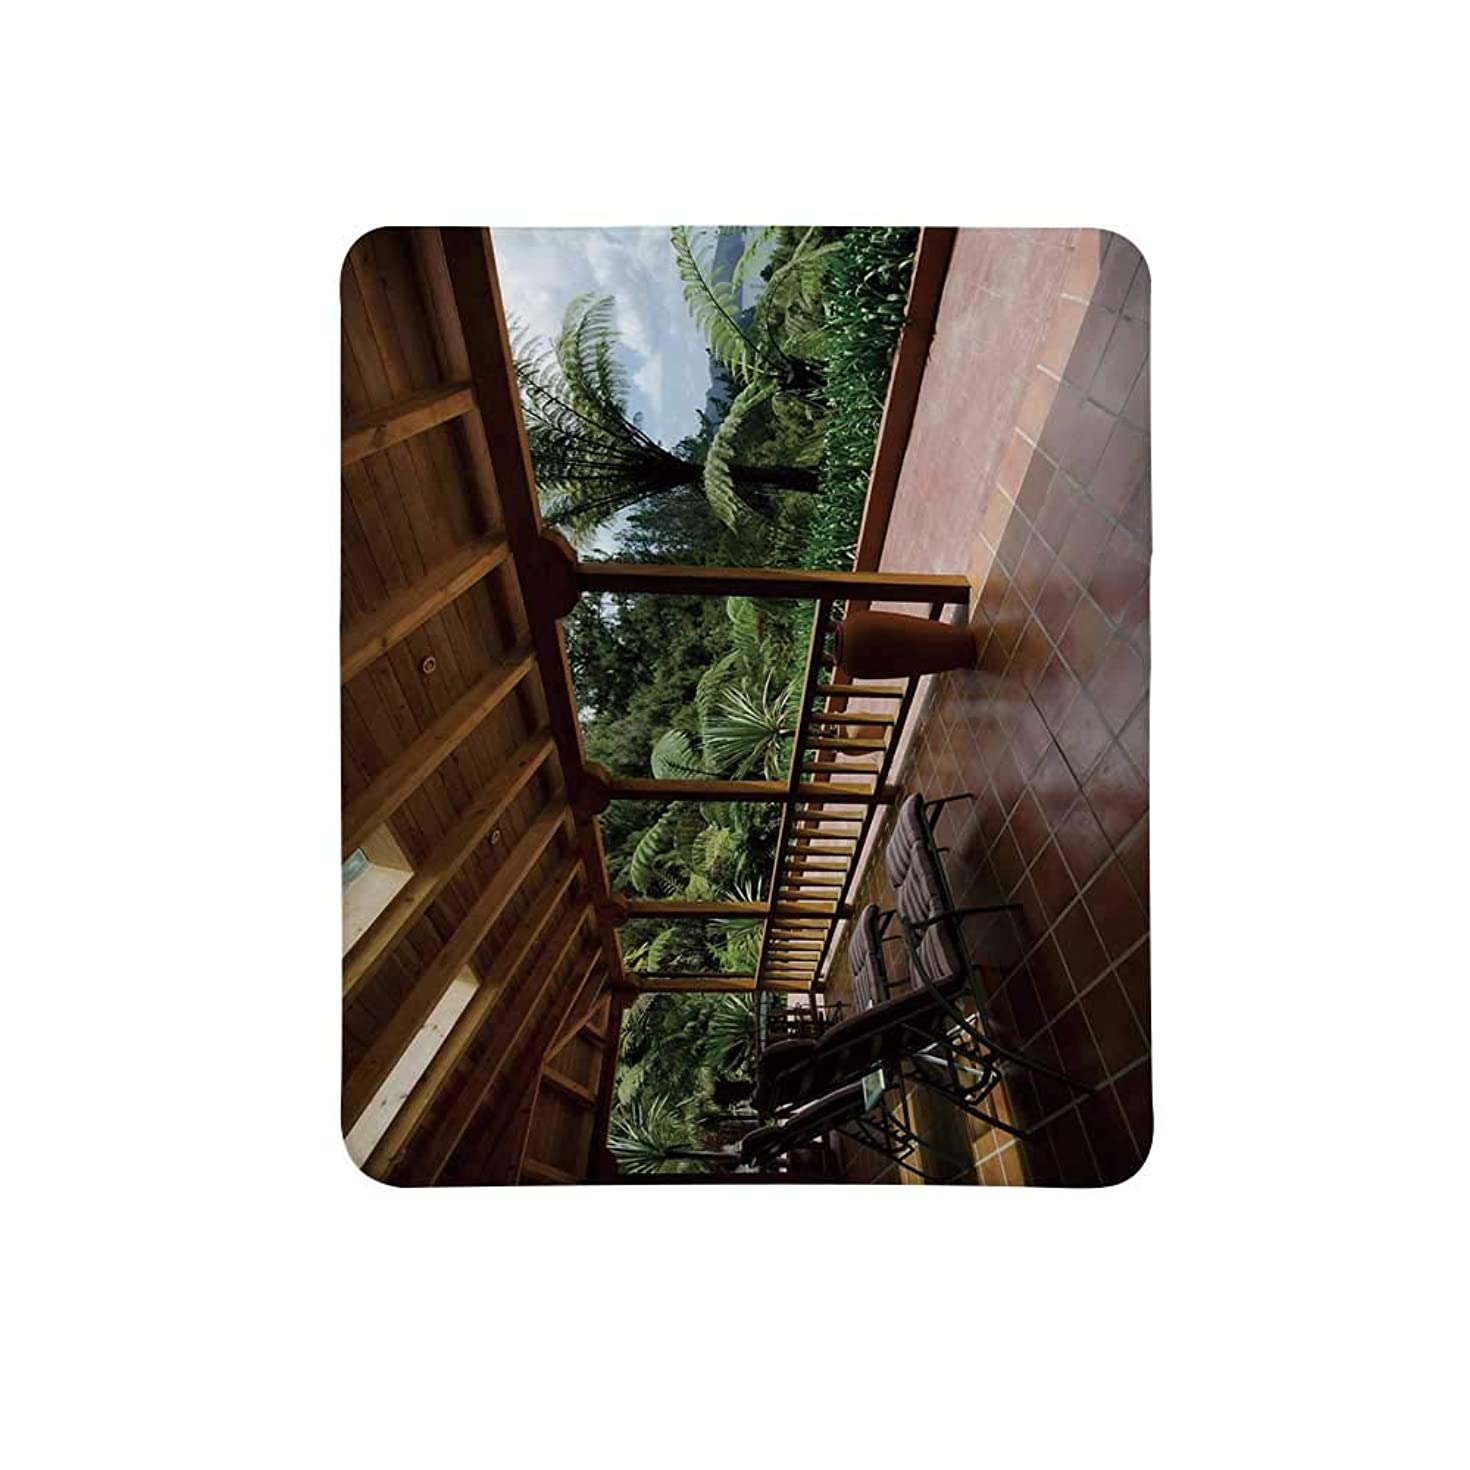 Patio Decor Non Slip Mouse Pad,Sub Tropical Wooden Terrace Near Bushes and Grass Villa Yard Lifestyle for Home & Office,11